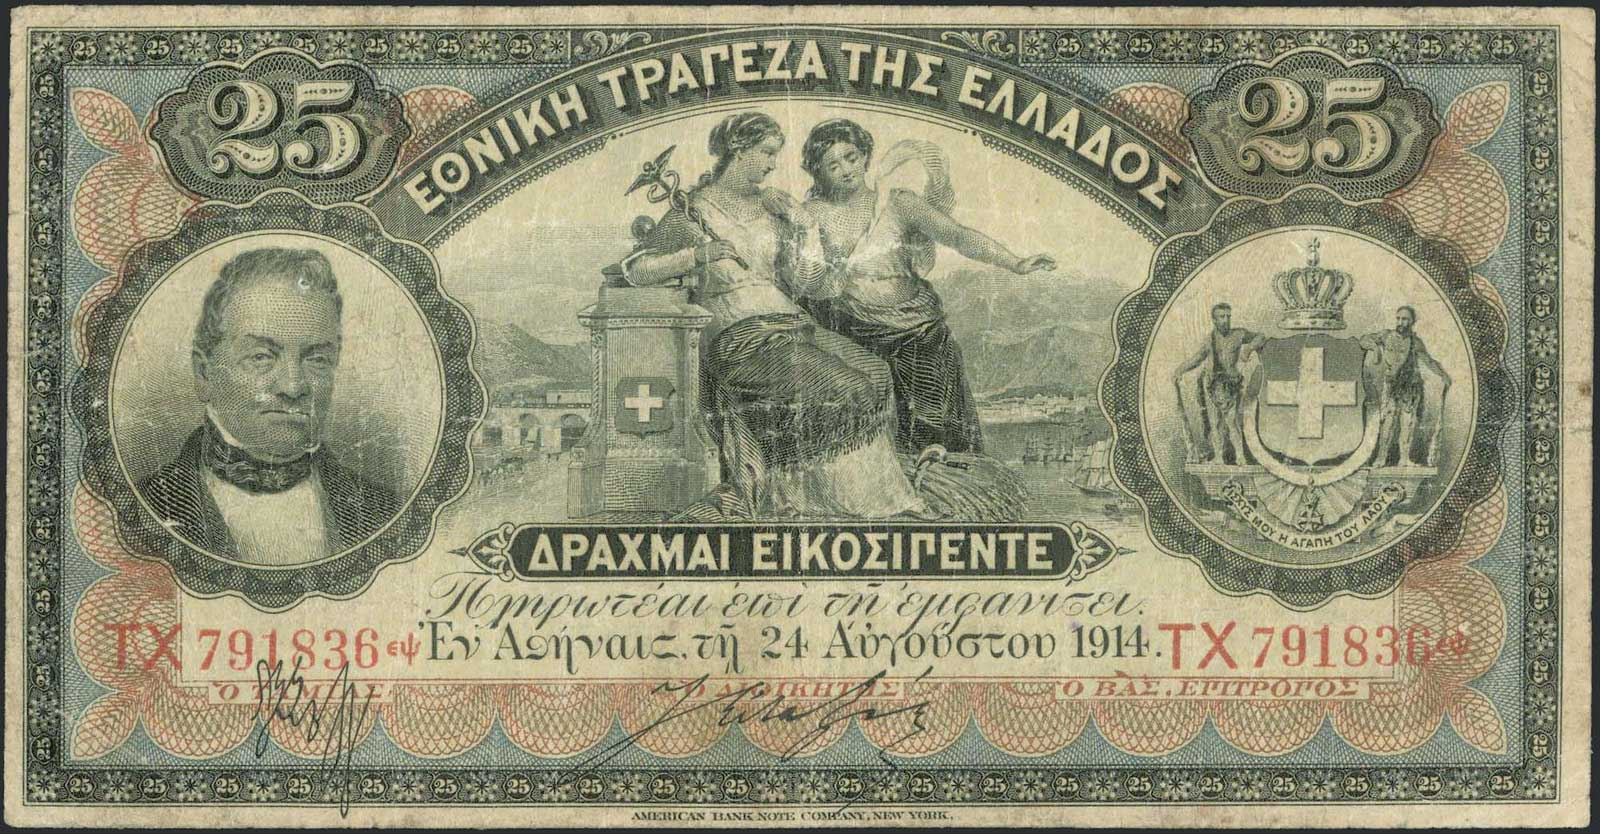 Lot 9283 - GREECE-  PAPER MONEY - BANKNOTES National Bank of Greece -  A. Karamitsos Public & LIVE Bid Auction 606 Coins, Medals & Banknotes